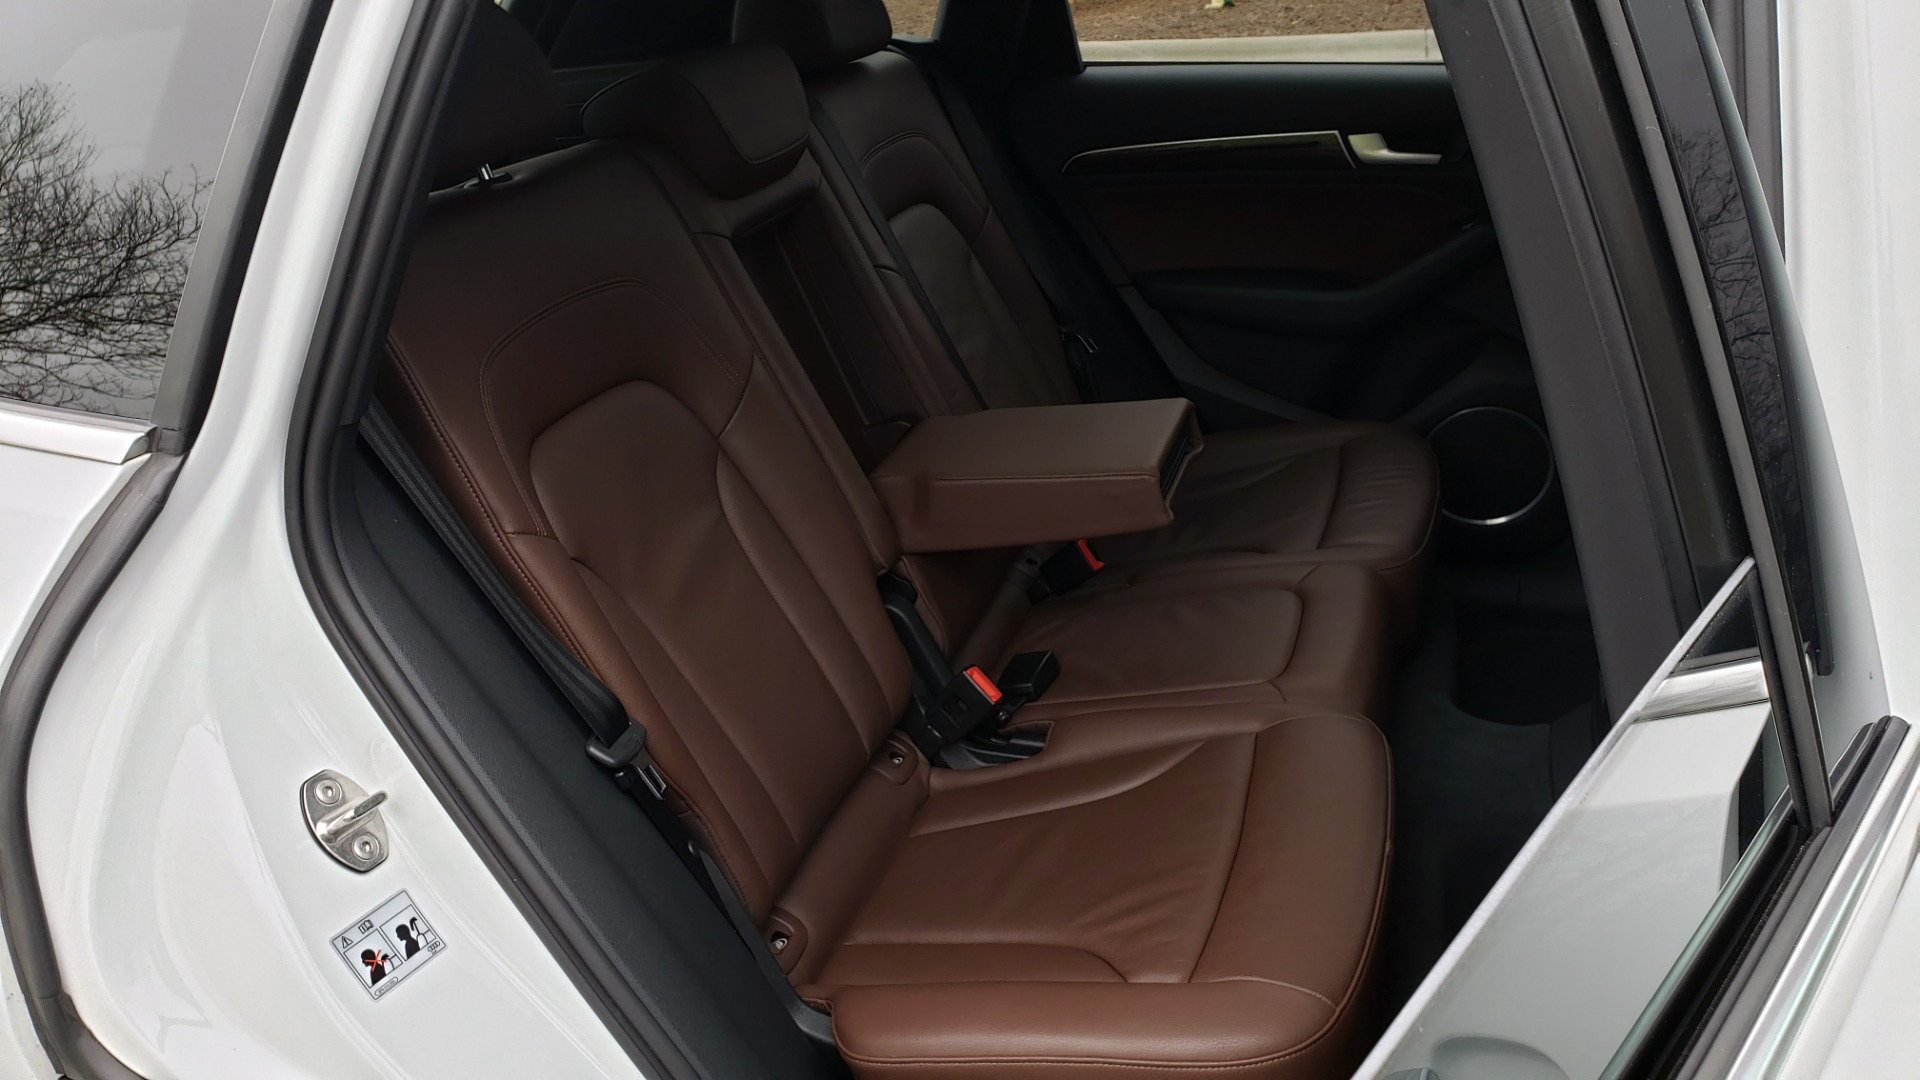 Used 2017 Audi Q5 PREMIUM PLUS / TECH / NAV / PANO-ROOF / B&O SND / REARVIEW for sale Sold at Formula Imports in Charlotte NC 28227 78